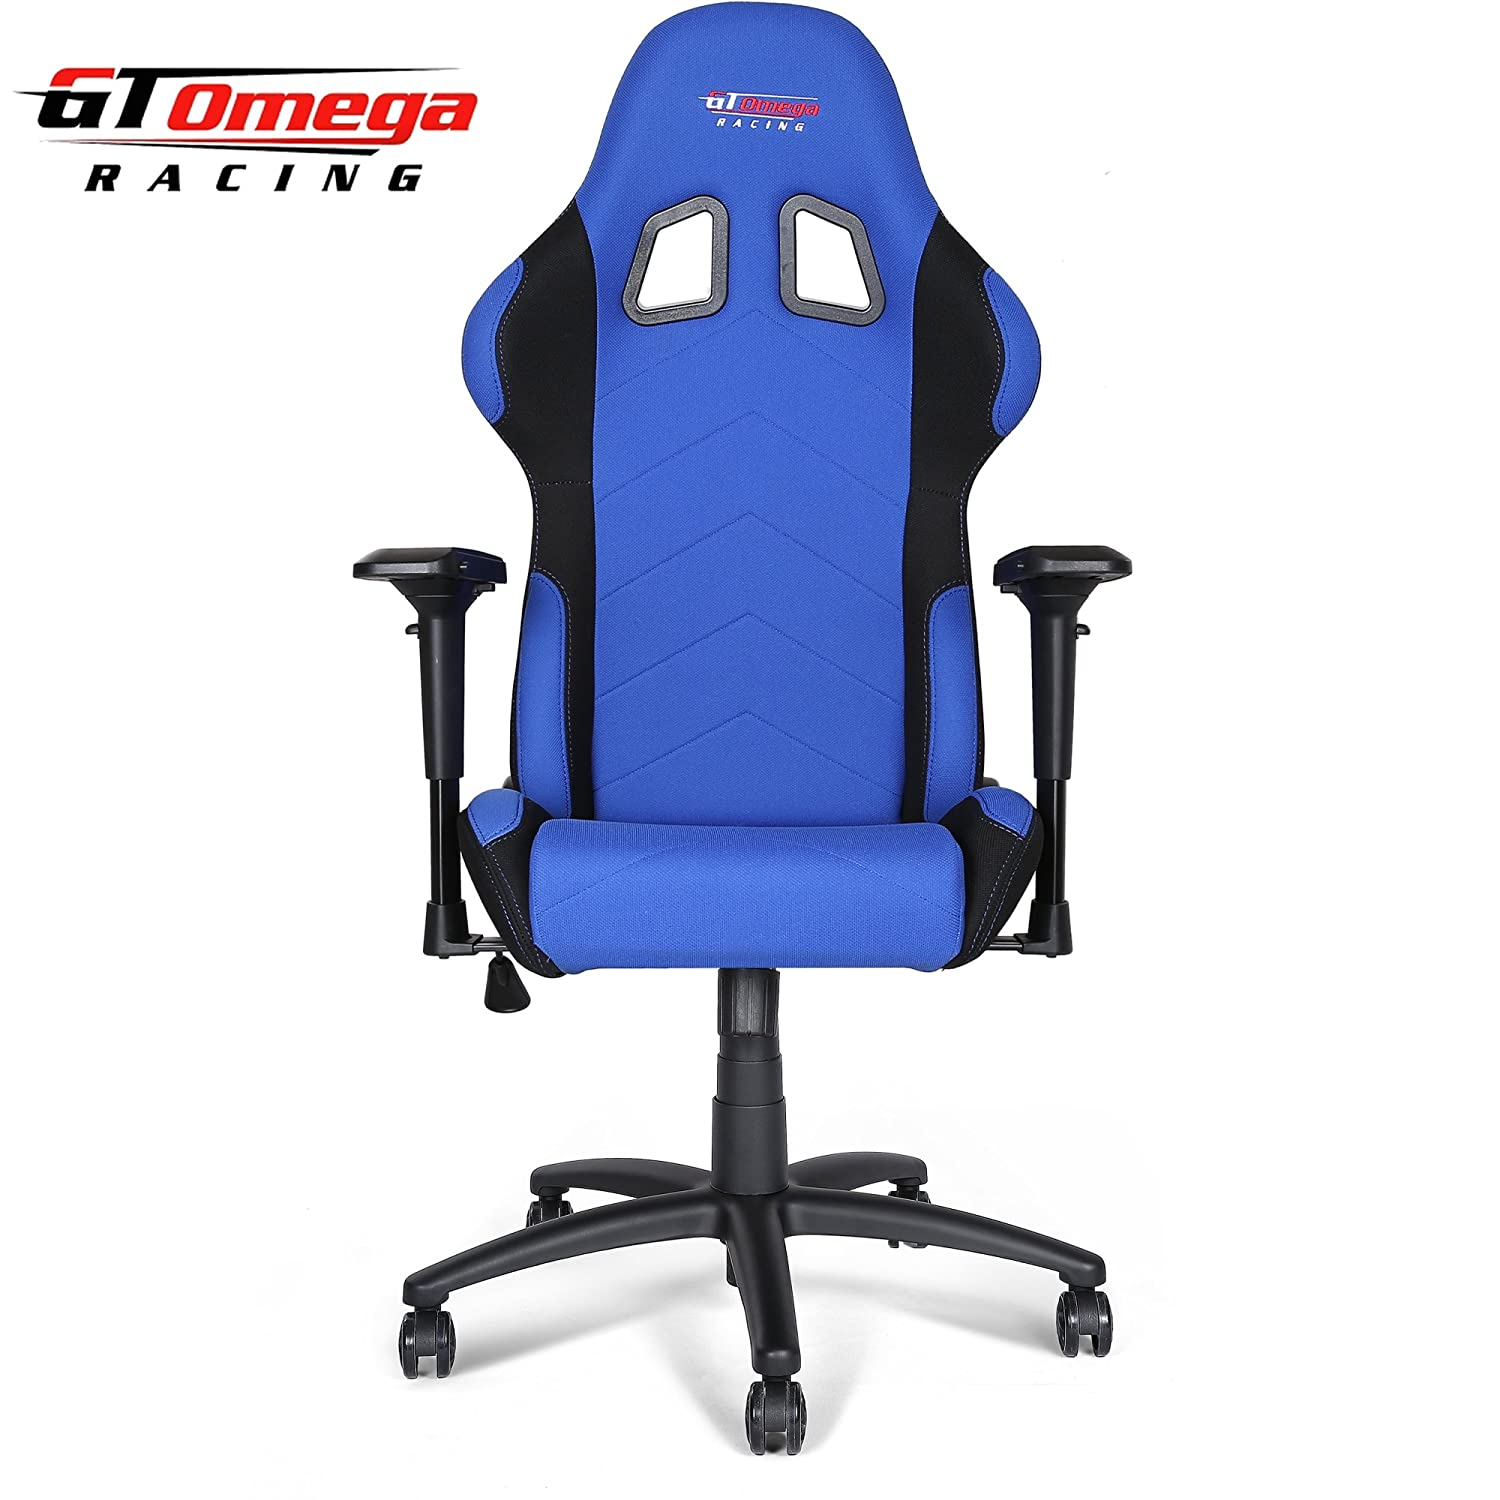 Amazon GT Omega PRO Racing fice Chair Blue and Black Fabric